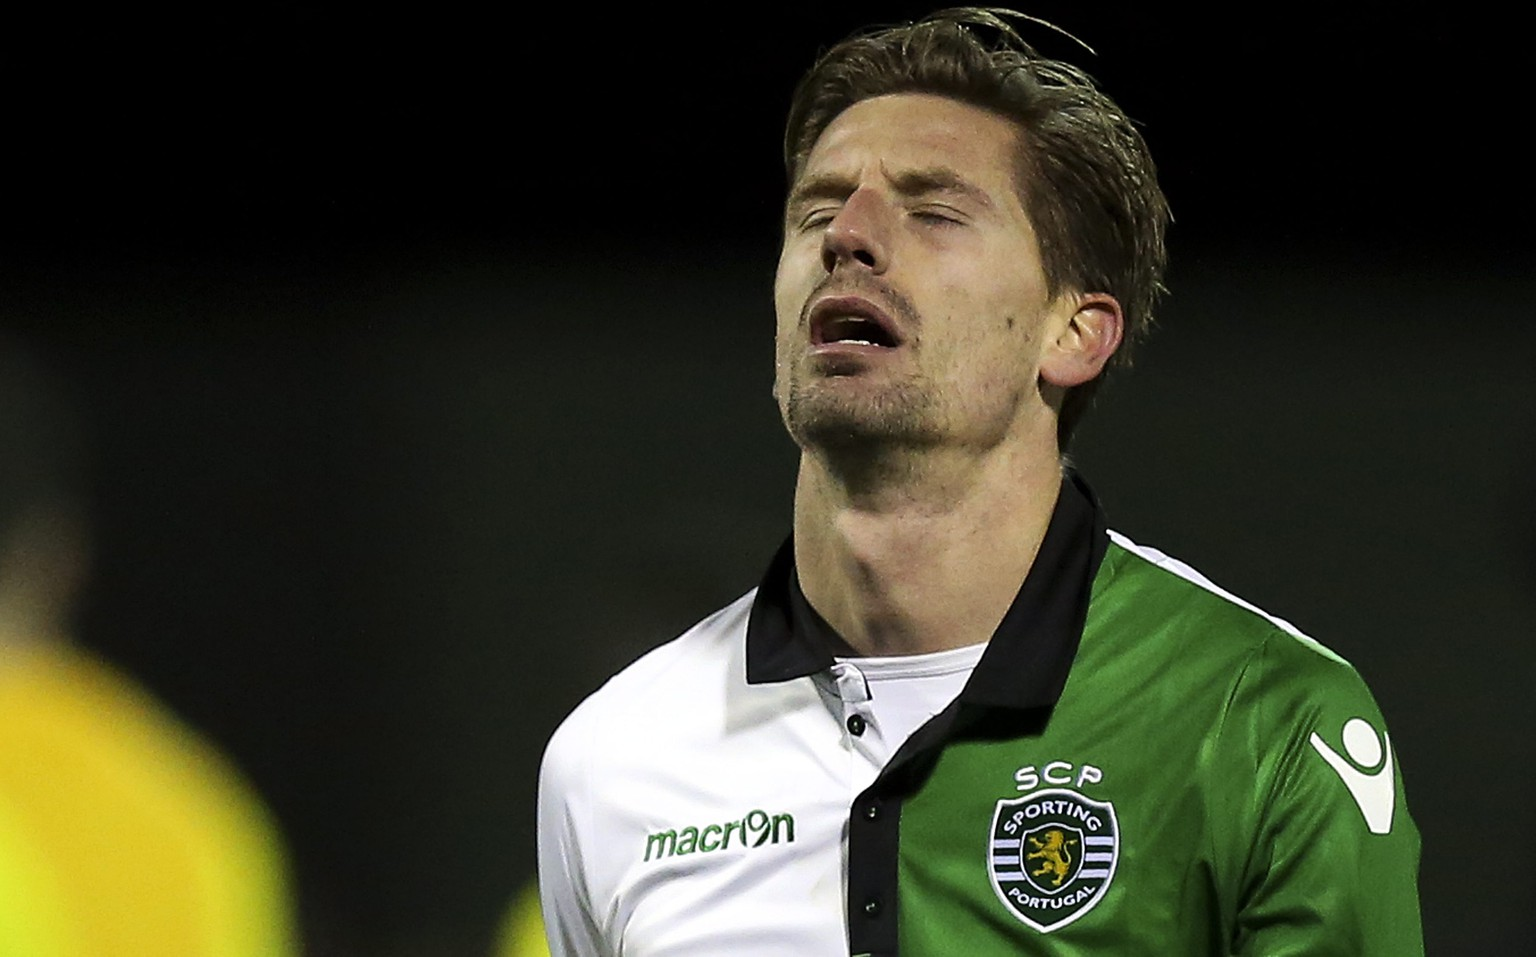 epa05725741 Sporting Adrien Silva reacts after losing their Portuguese Cup soccer match held at Chaves Municipal stadium, Chaves, Portugal, 17 January 2017.  EPA/JOSE COELHO